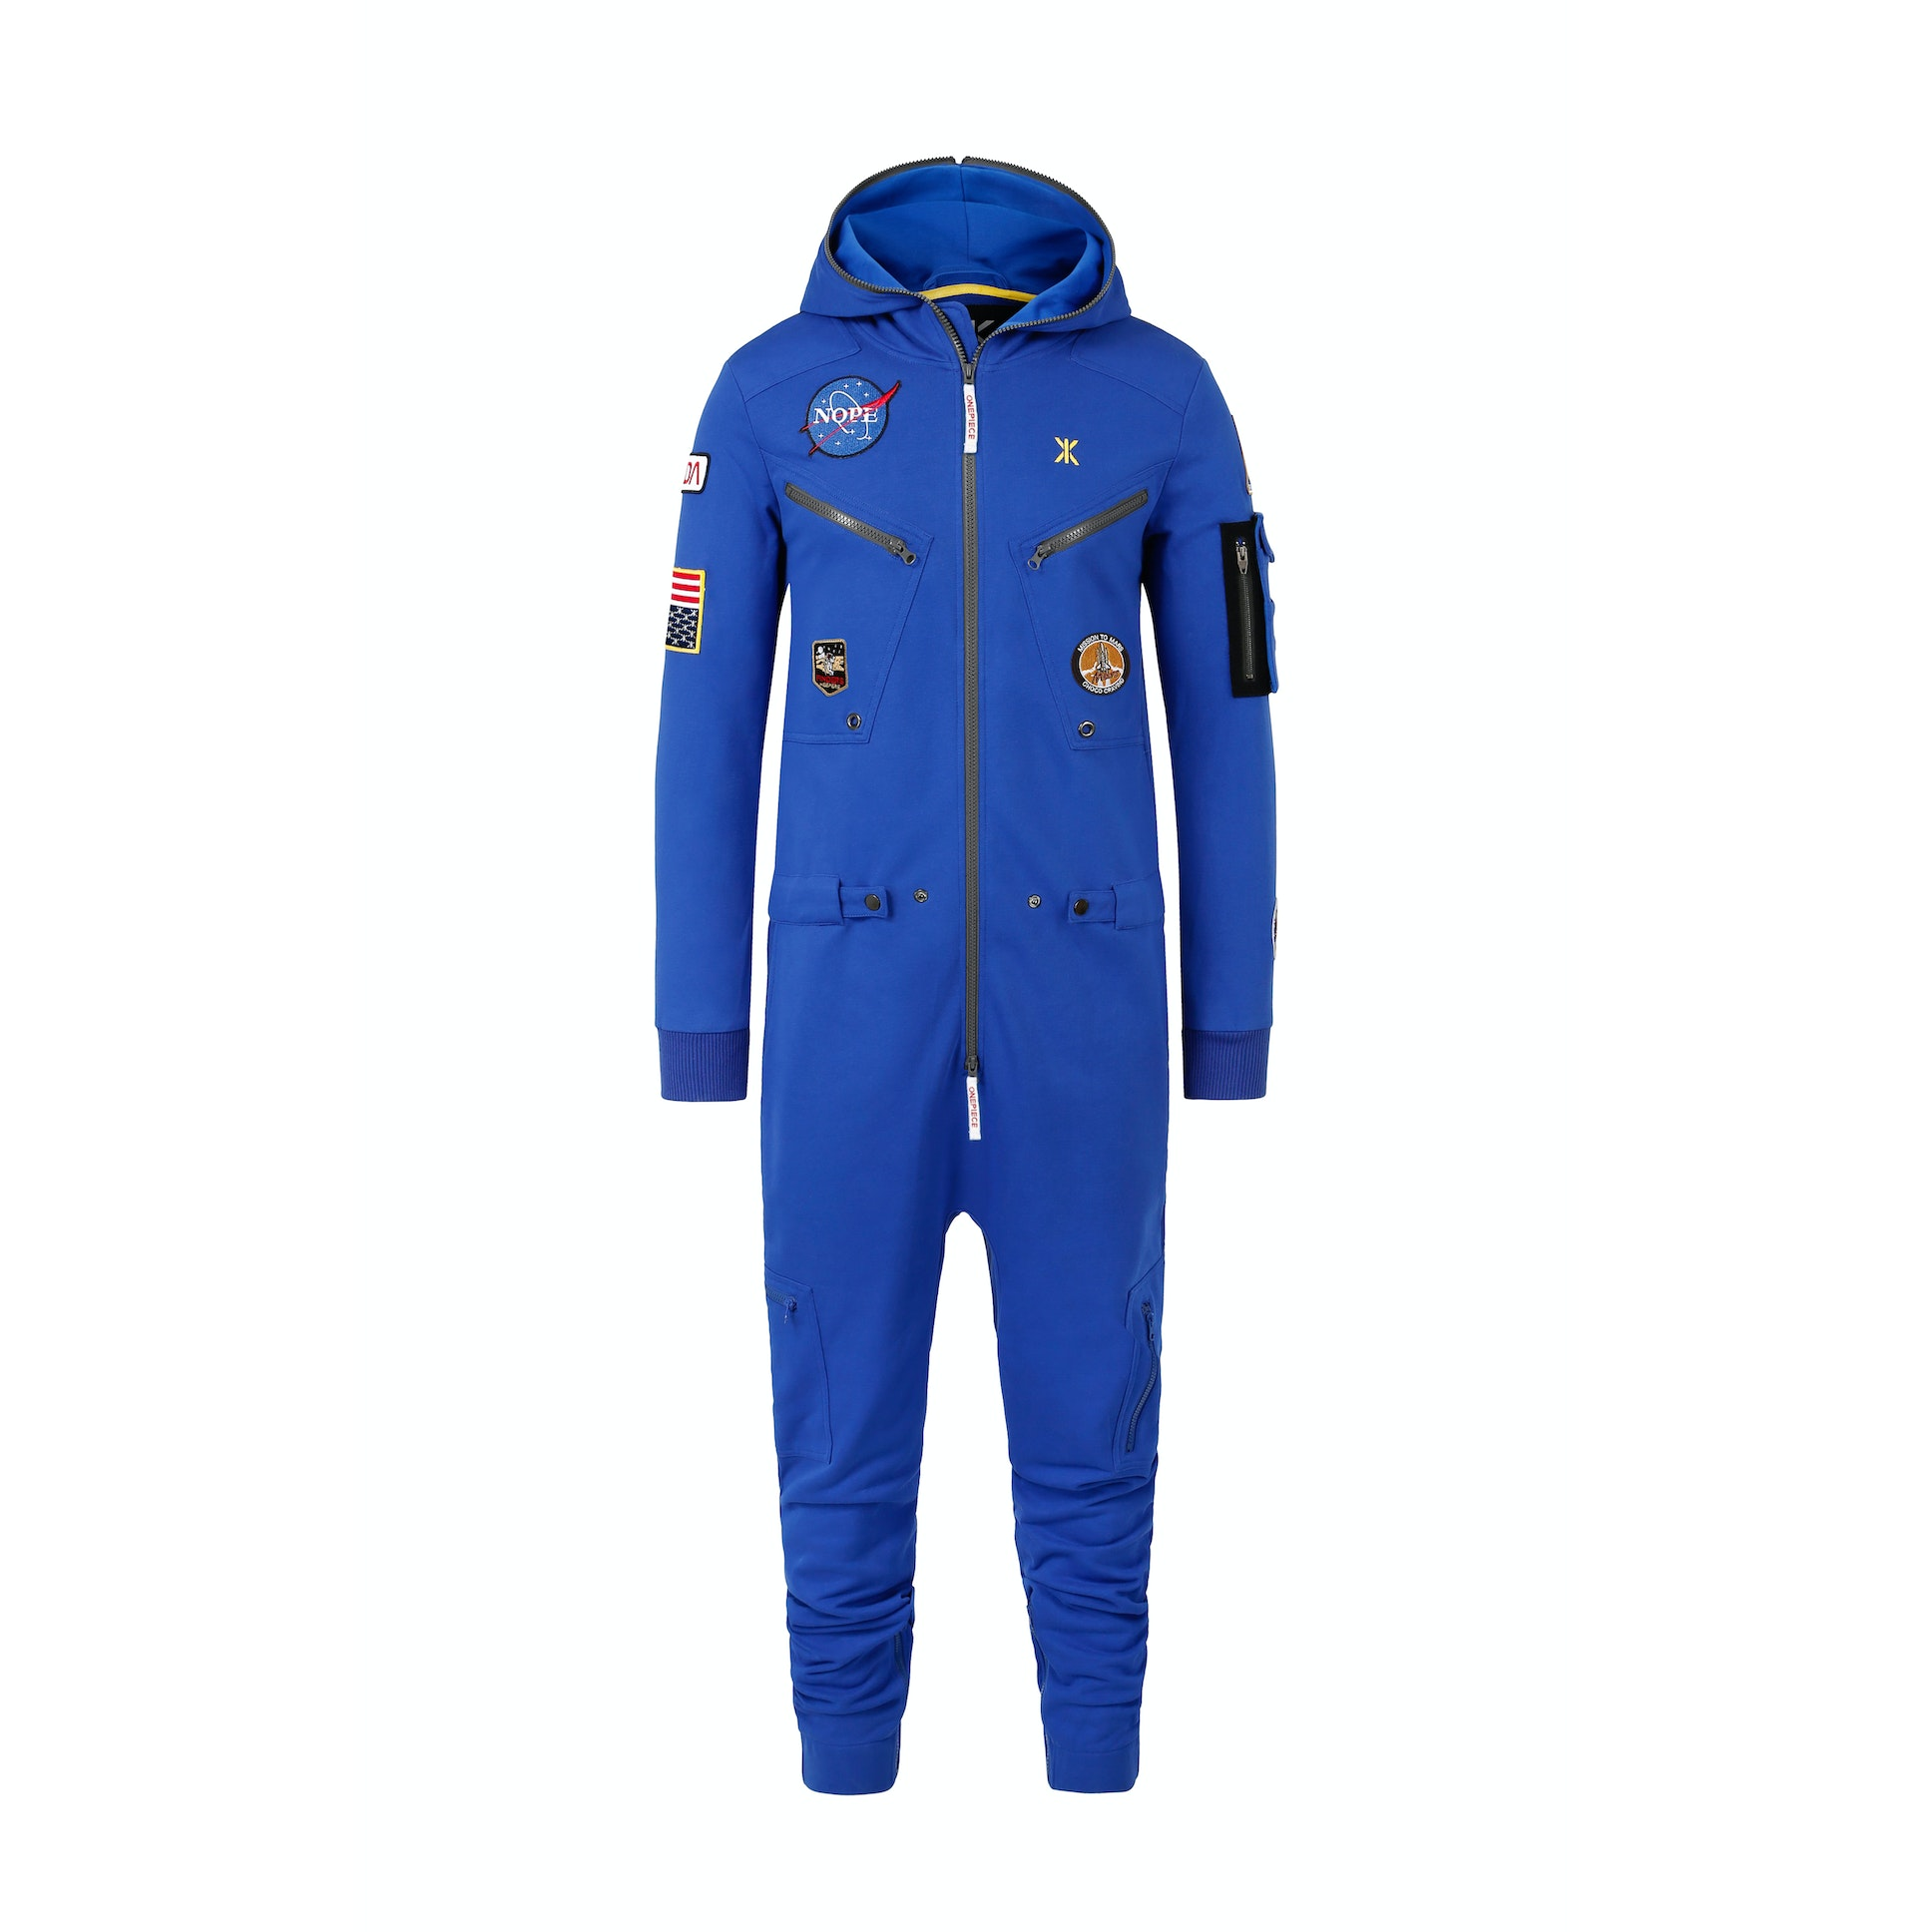 the astronot jumpsuit blue